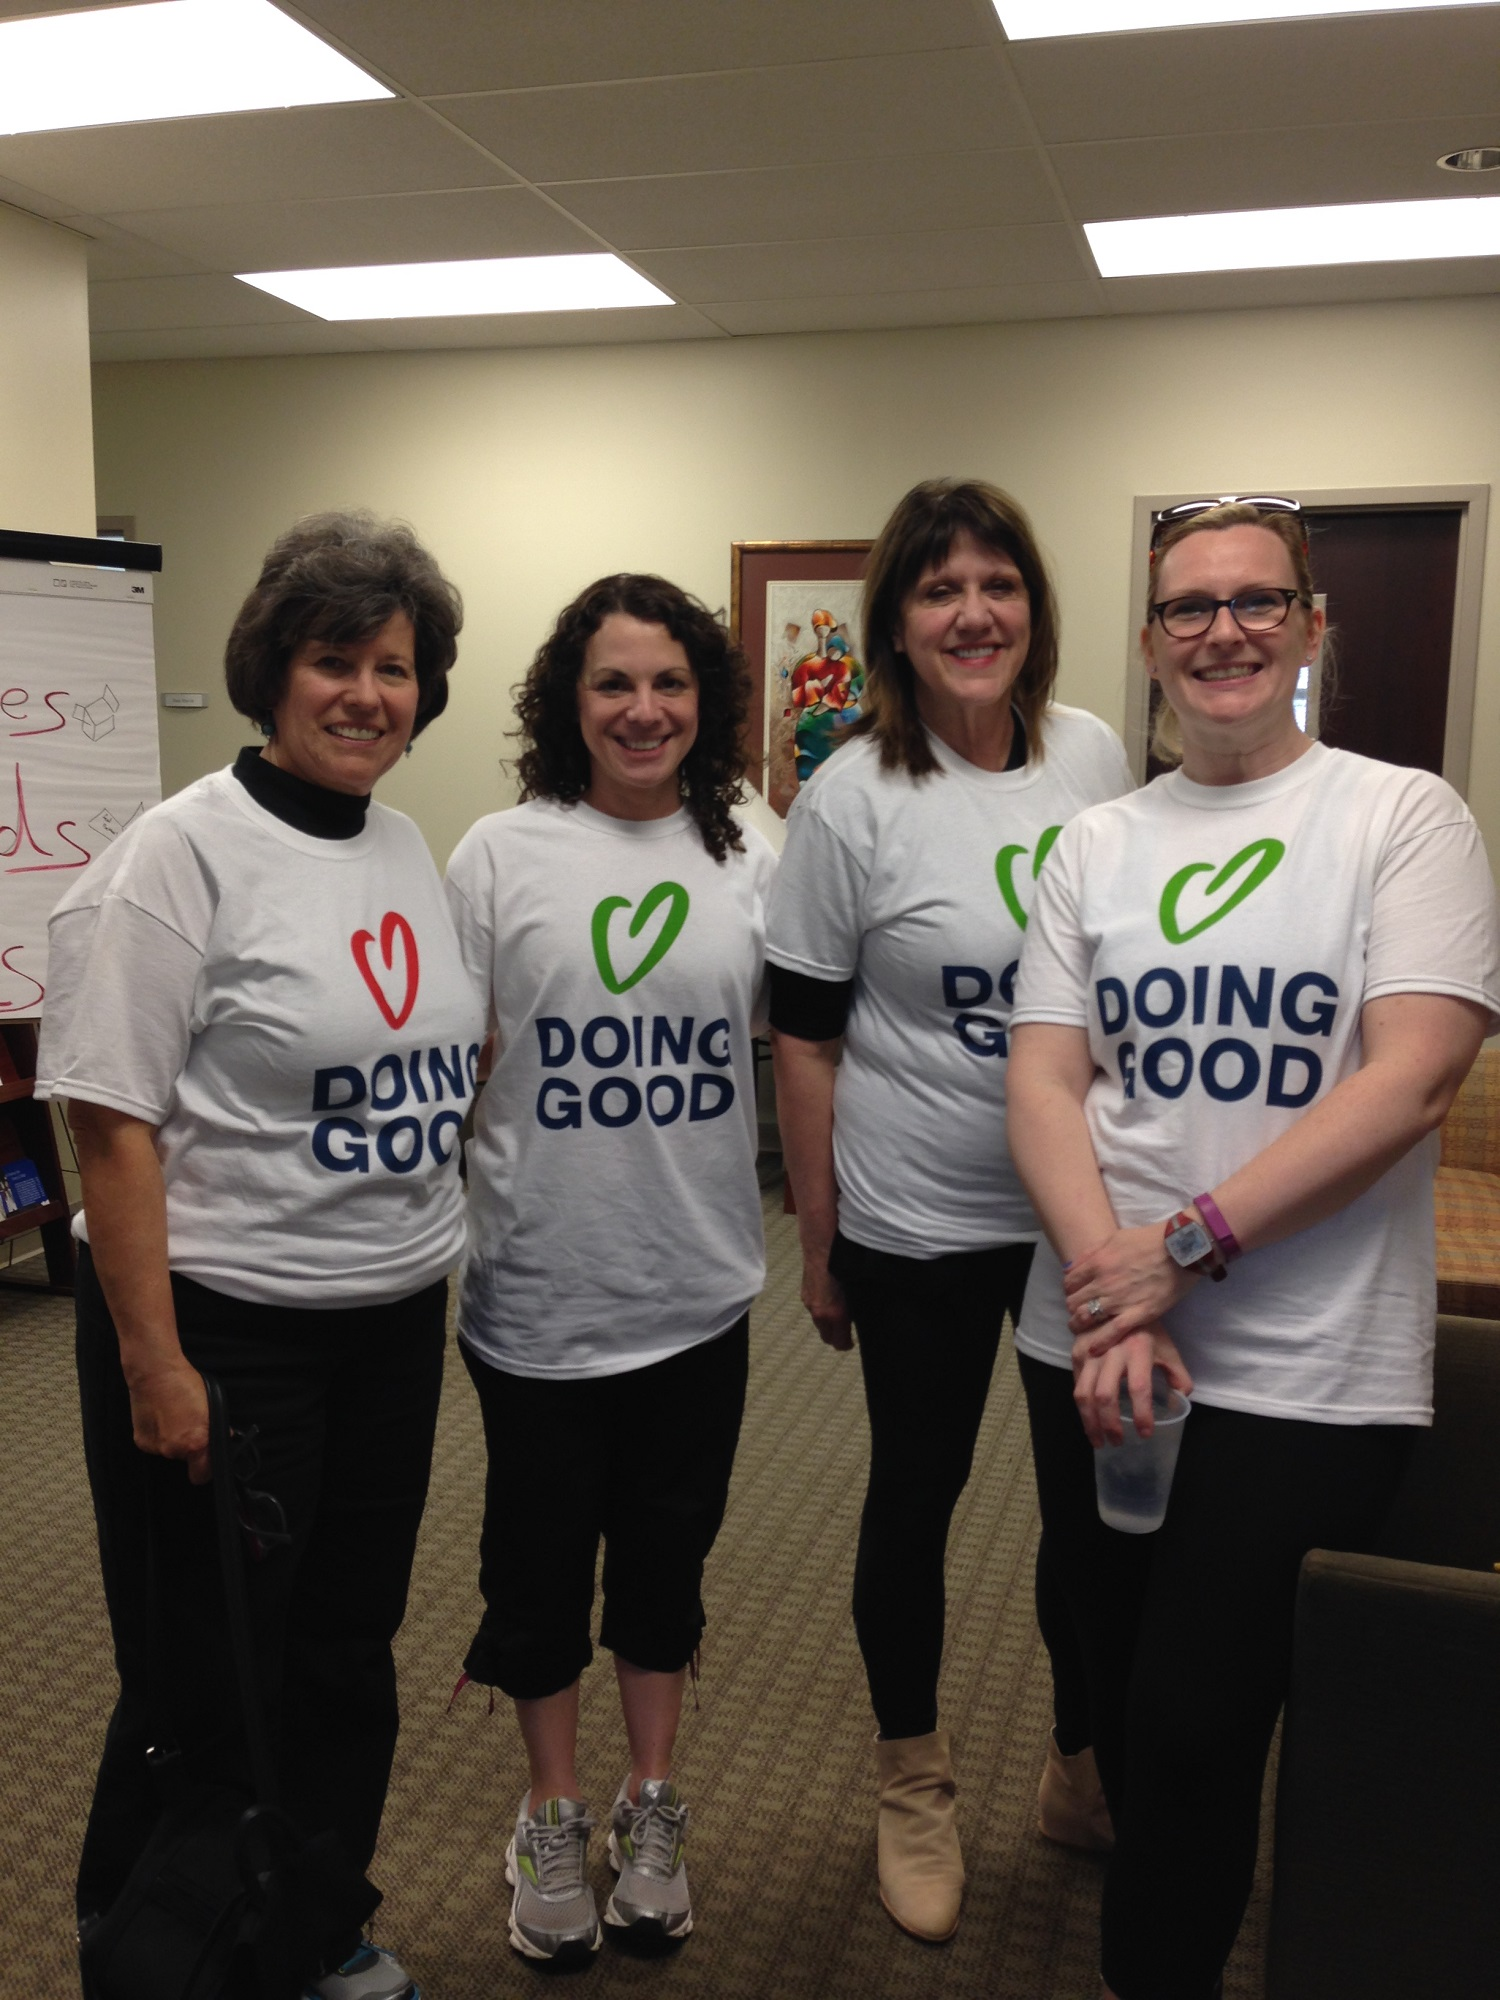 Women of the Jewish Federation of Chattanooga prepare for doing good with their office.